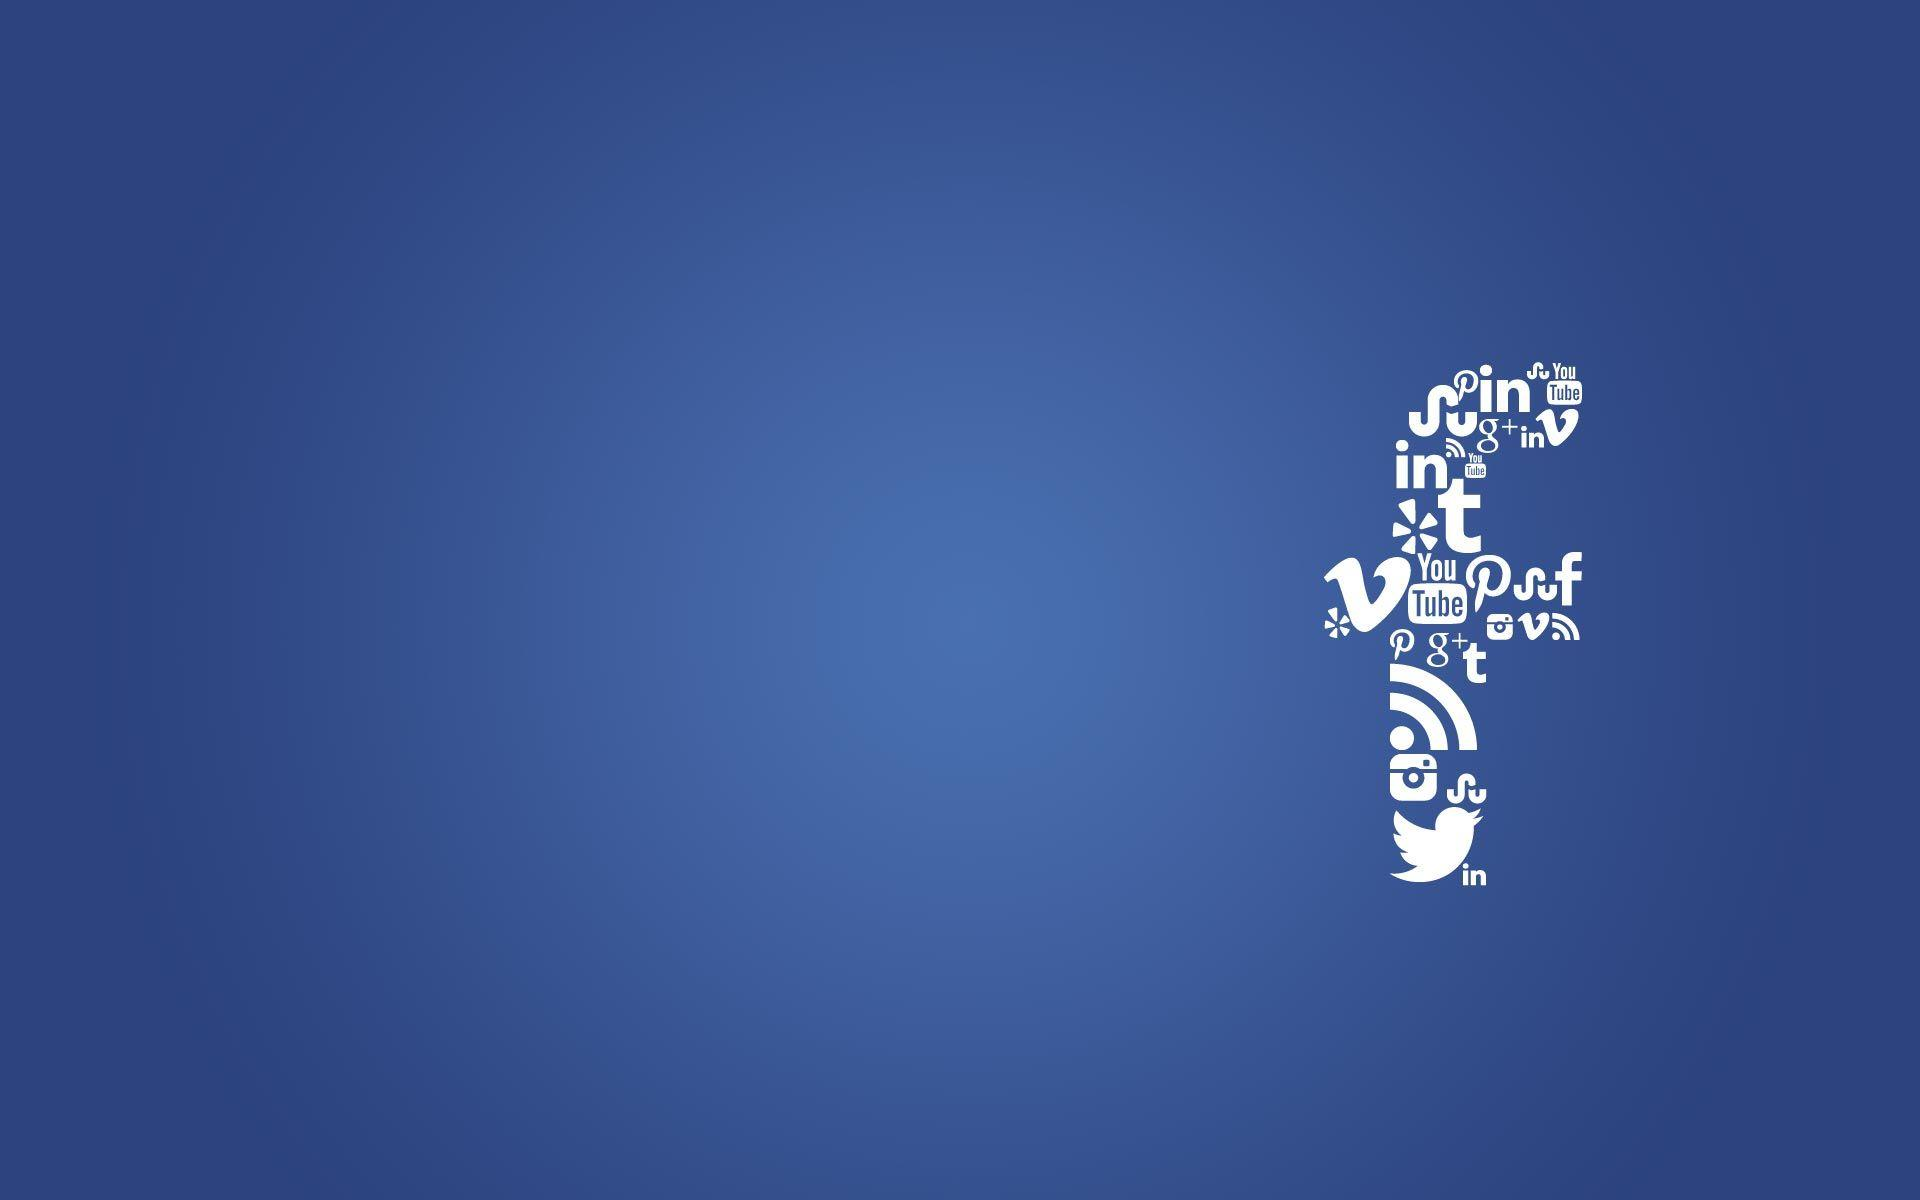 Facebook Logo Hd Wallpaper